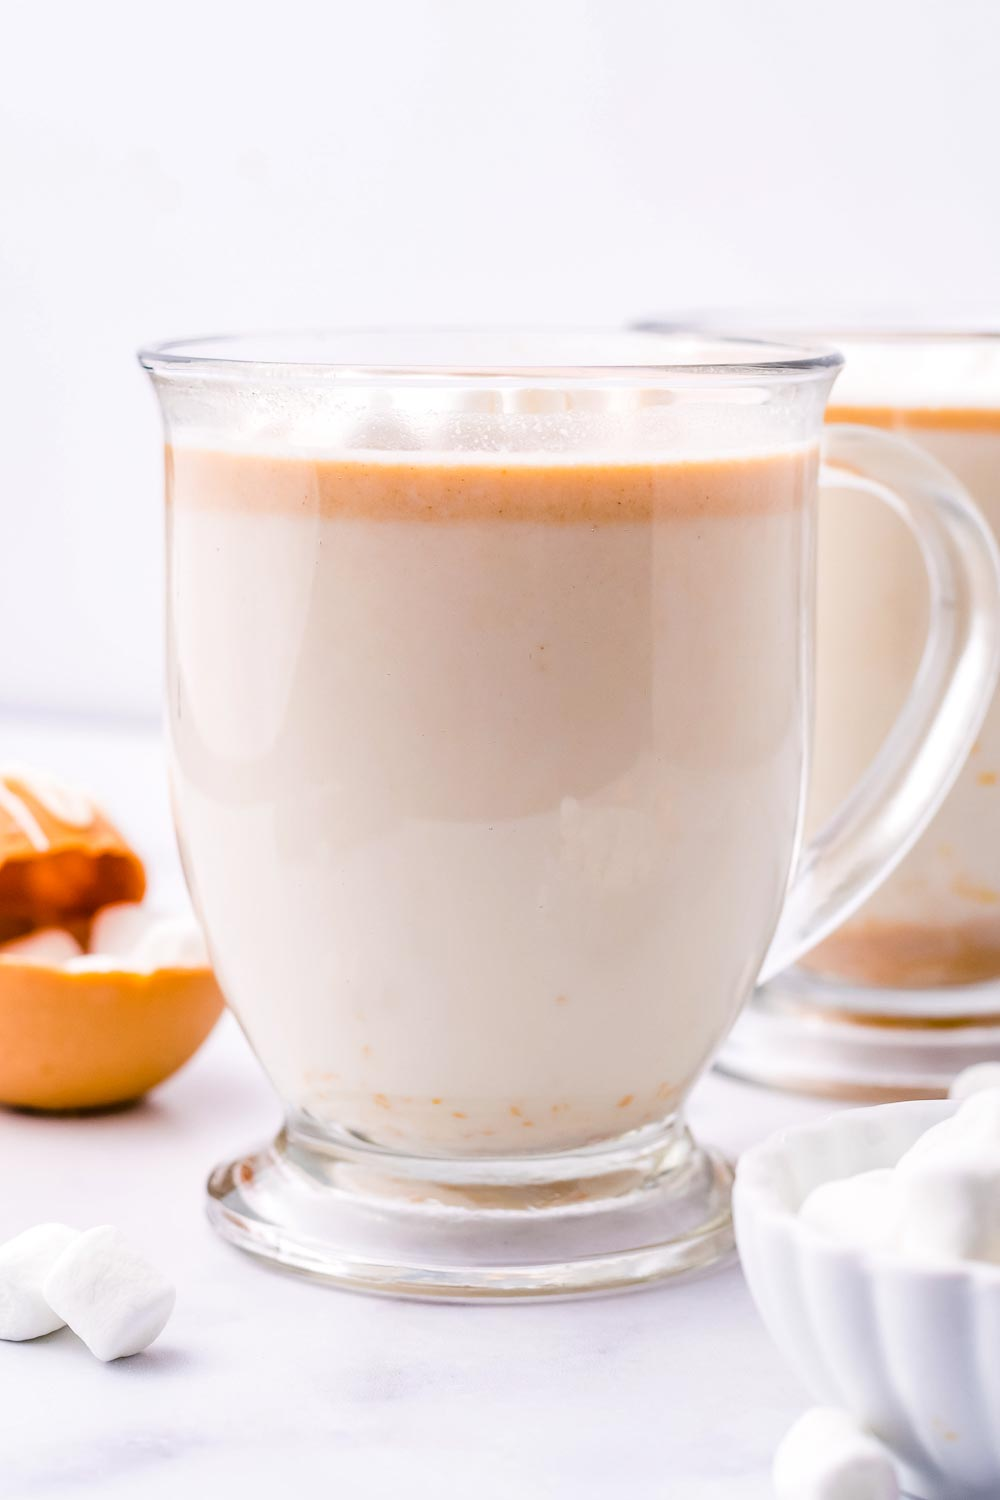 A cup of Peanut Butter White Hot Chocolate.